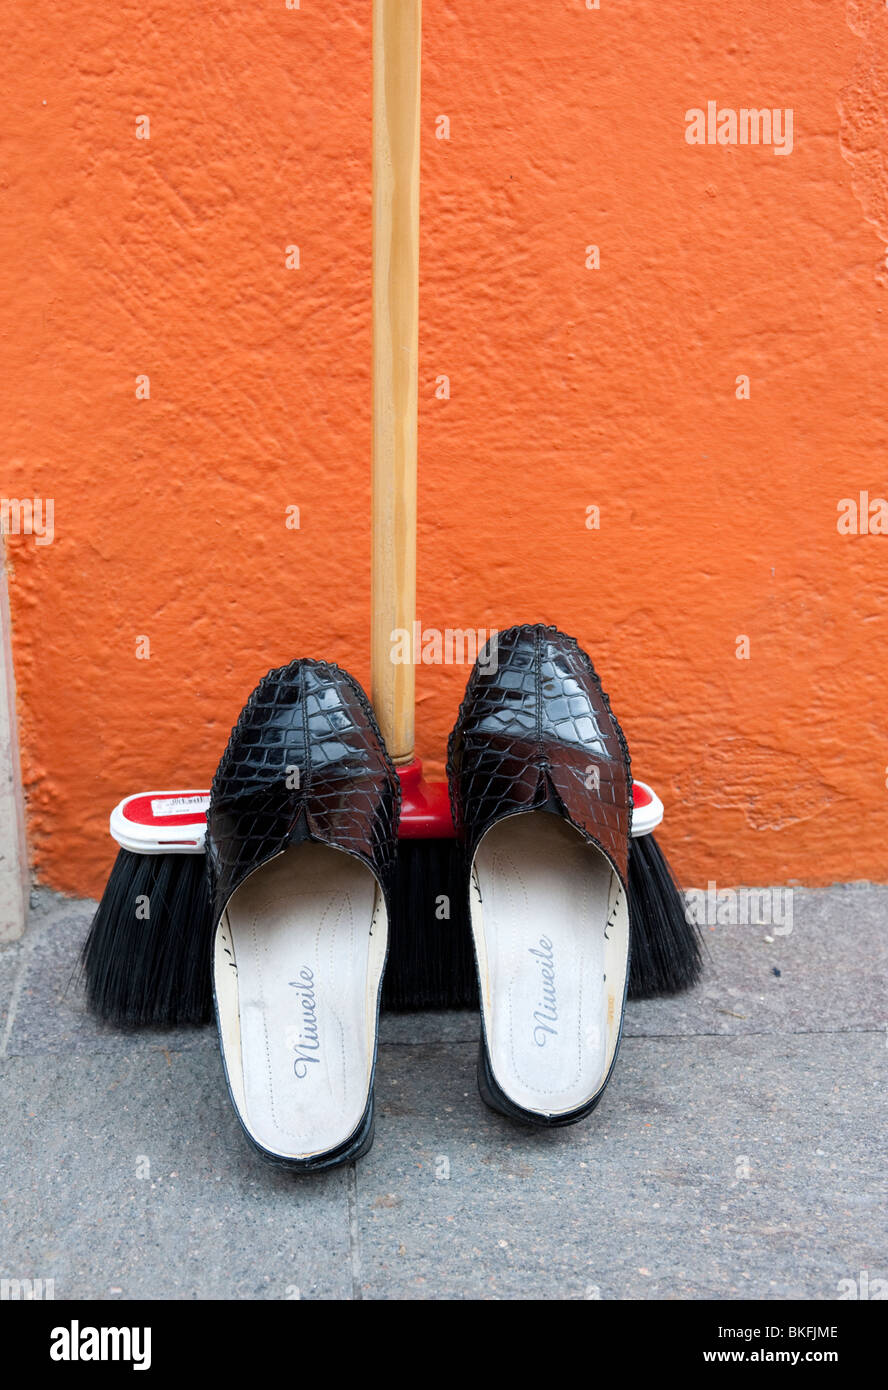 Detail of shoes resting on broom outside colourful orange house in Burano near Venice Italy - Stock Image